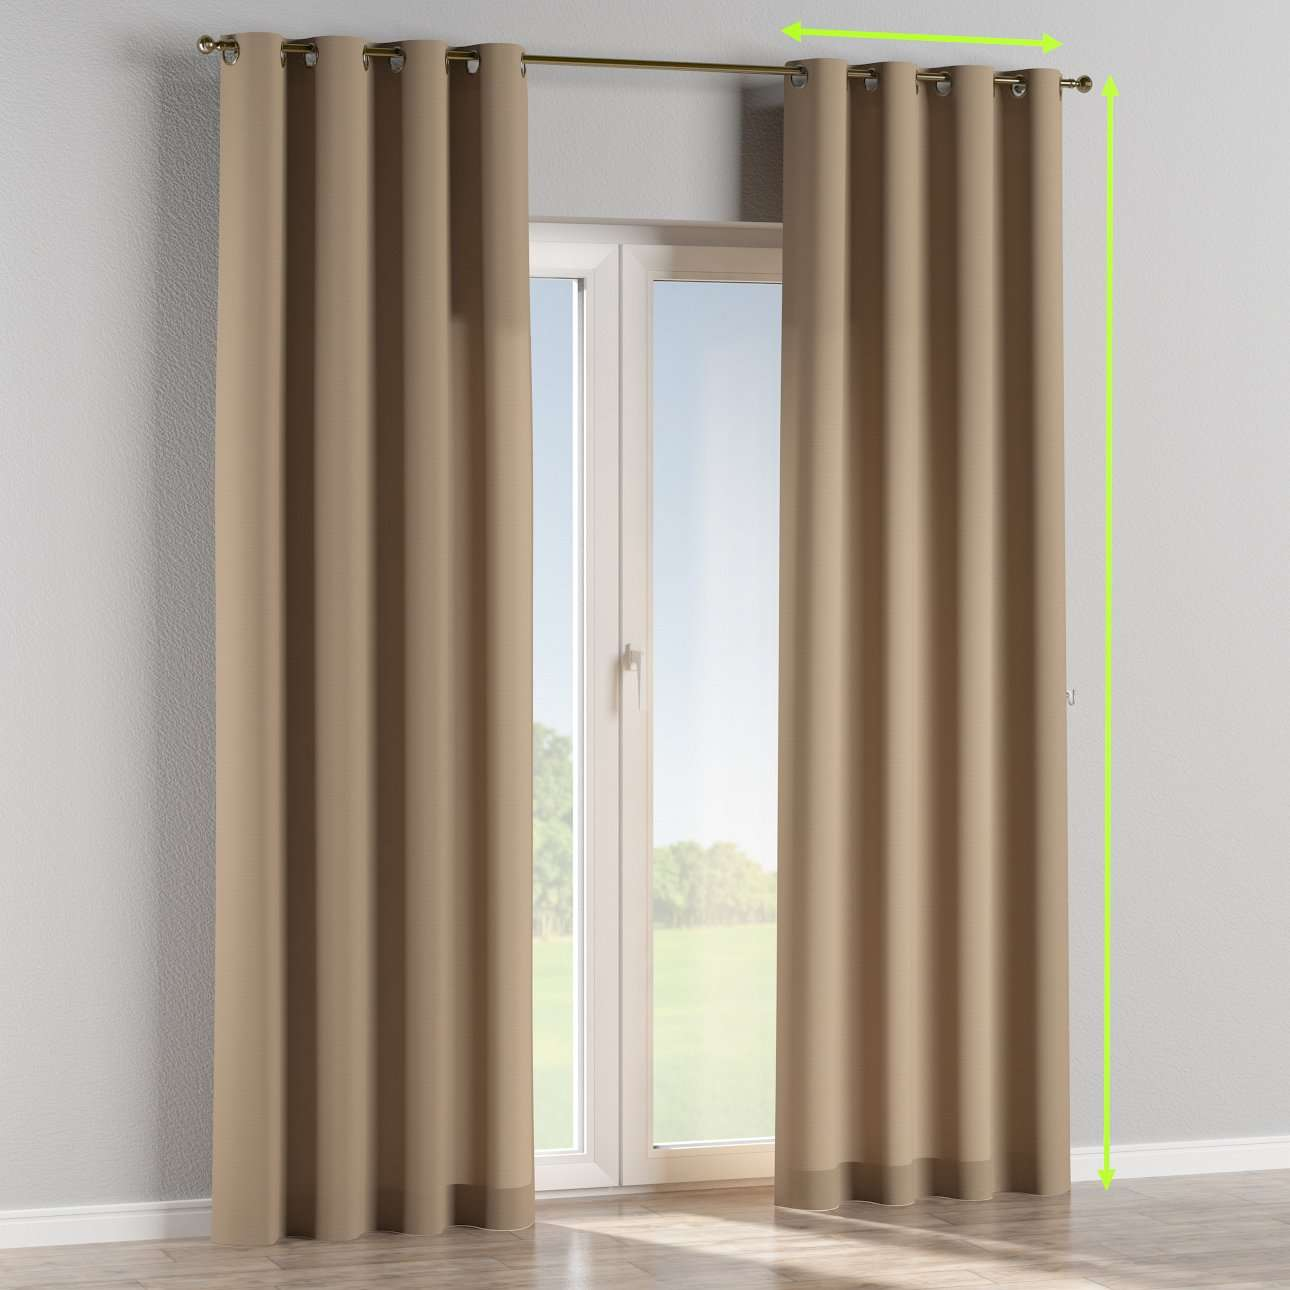 Eyelet curtains in collection Cotton Panama, fabric: 702-28